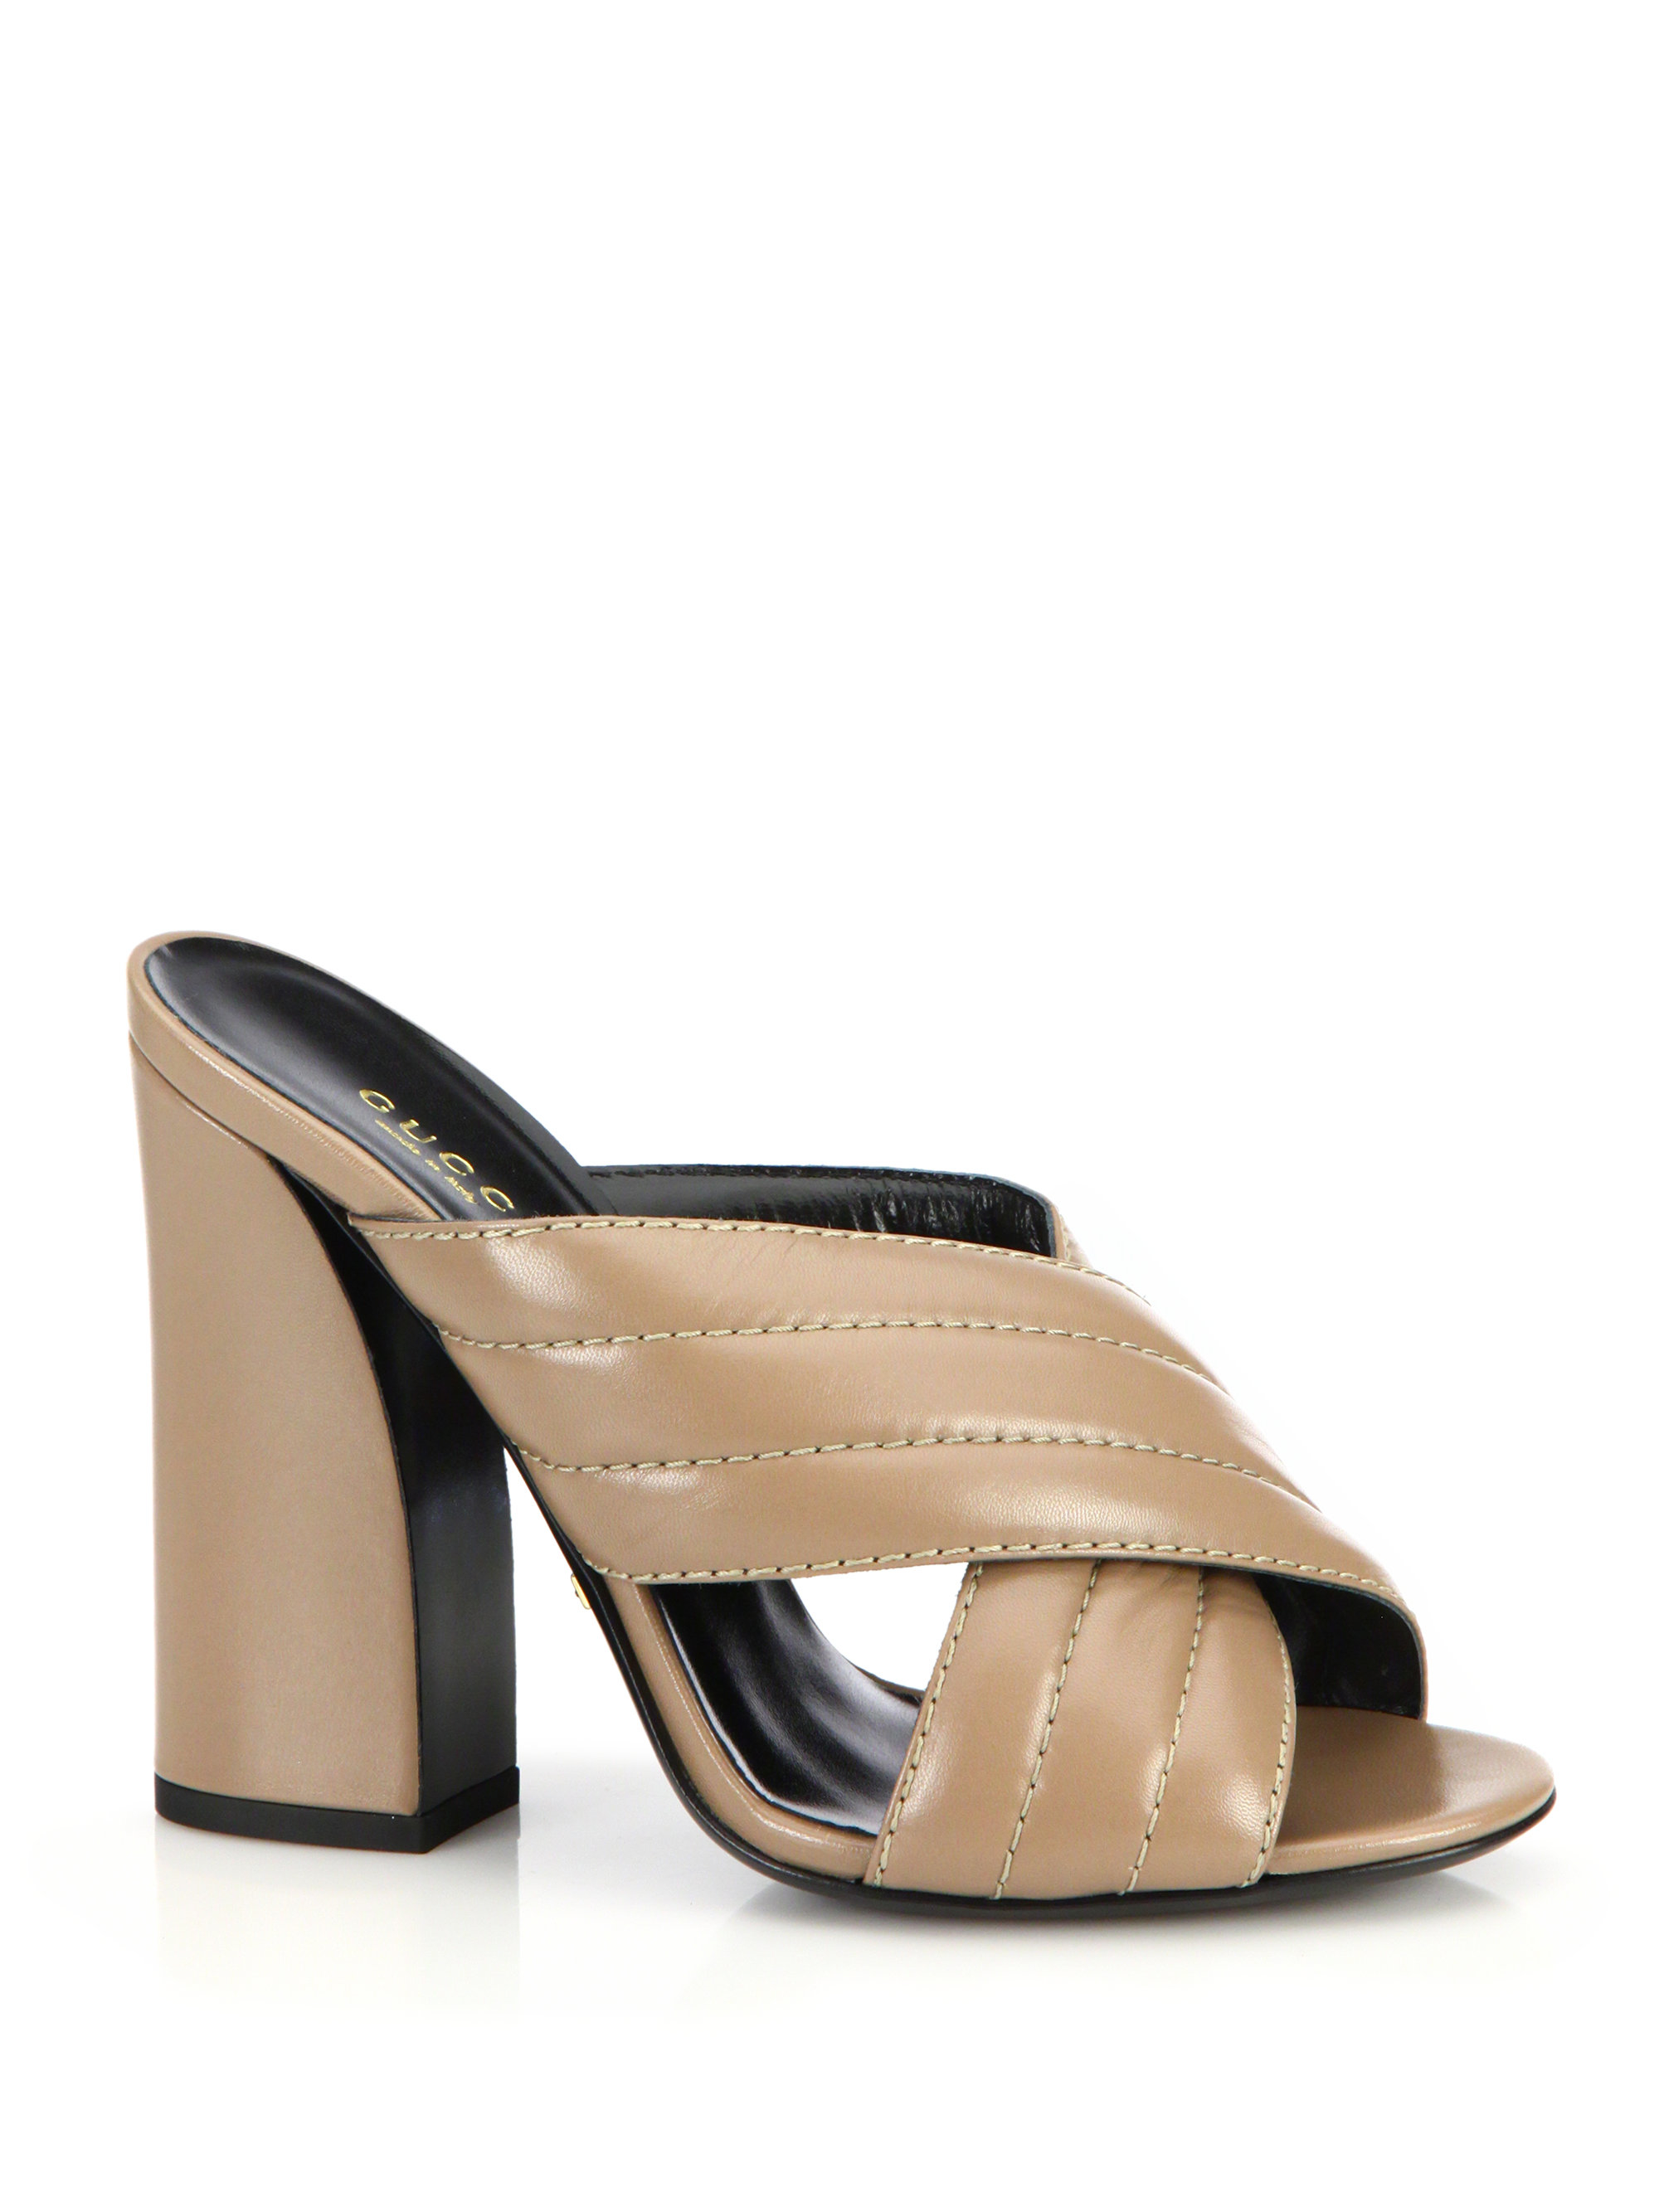 Gucci Leather Heel Shoes